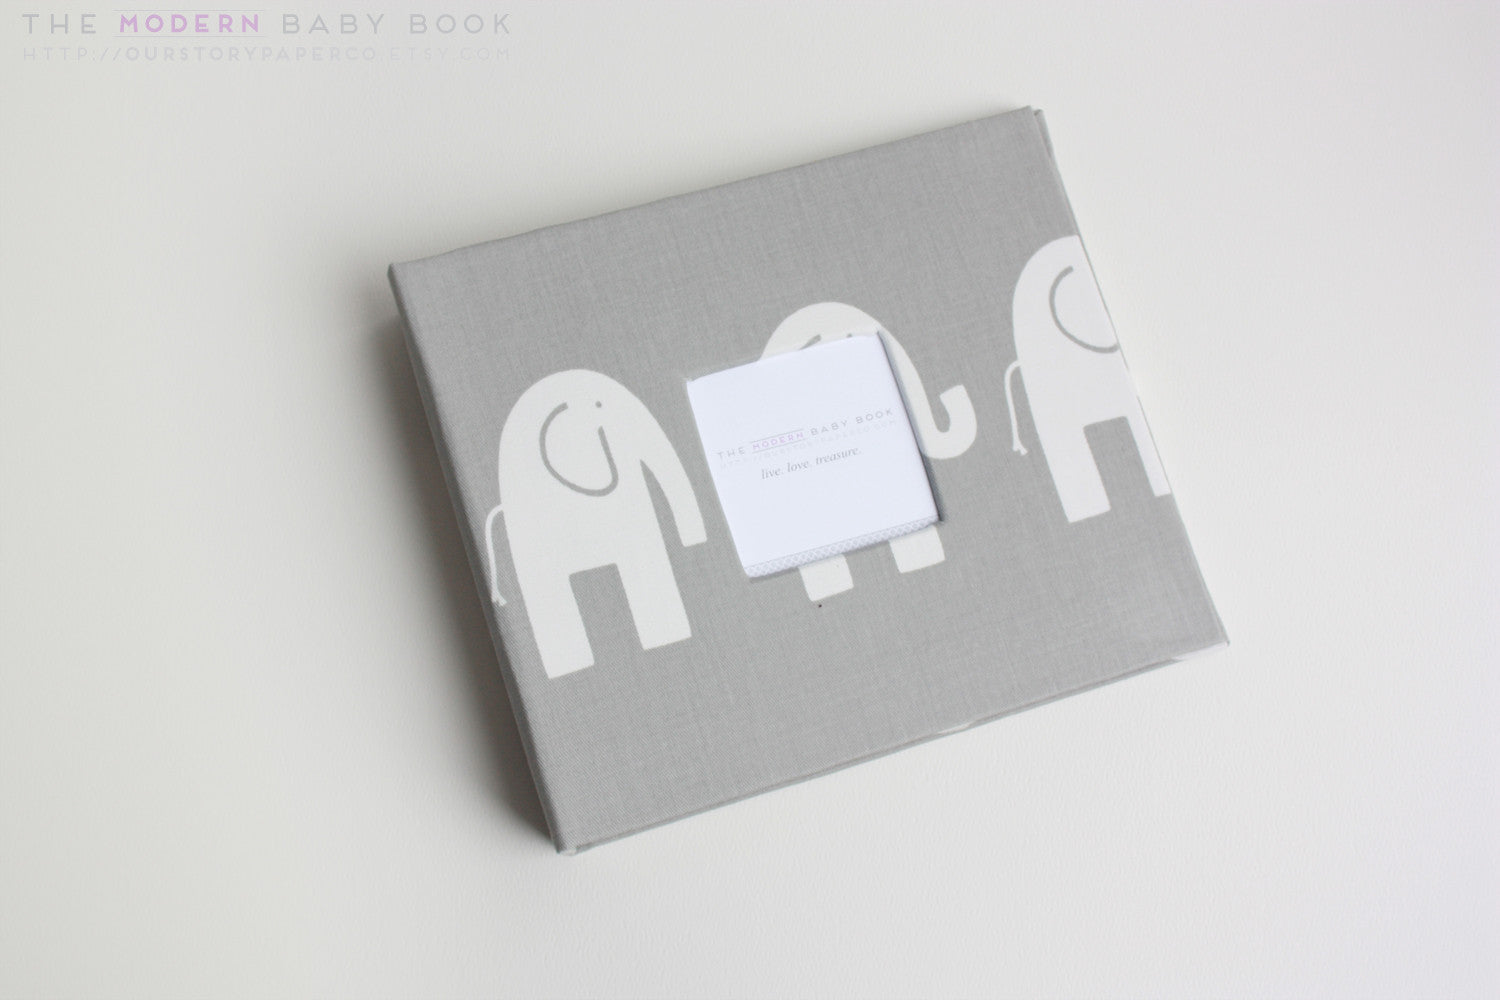 Gray Elephant Modern Baby Book - Our Story Paper Co.